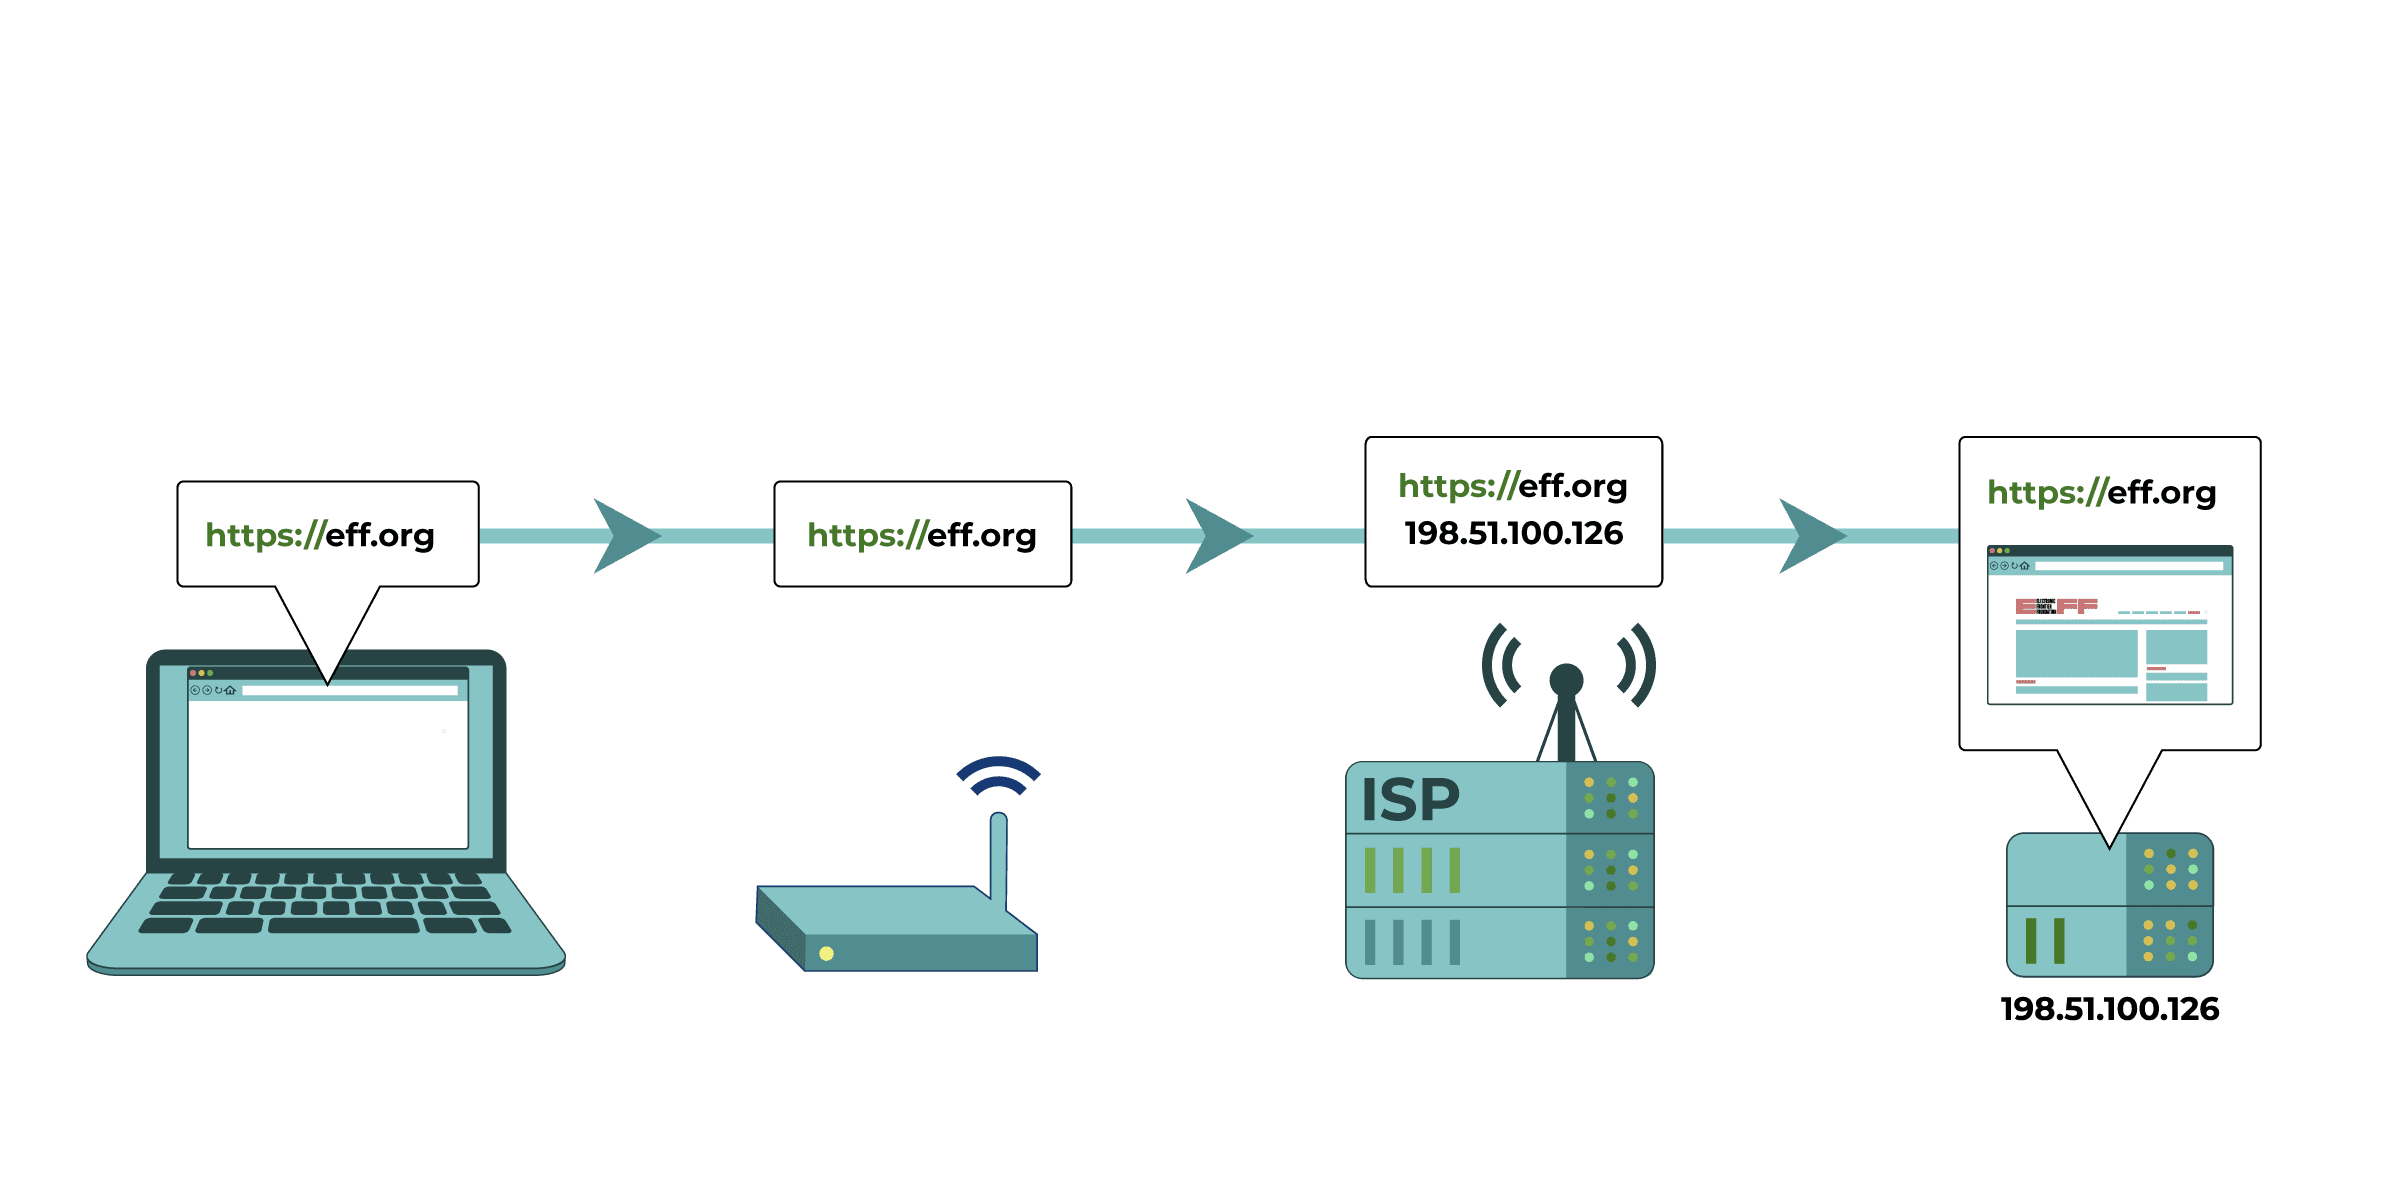 the request for eff.org passes through a router and ISP server on the way to the eff.org's server.